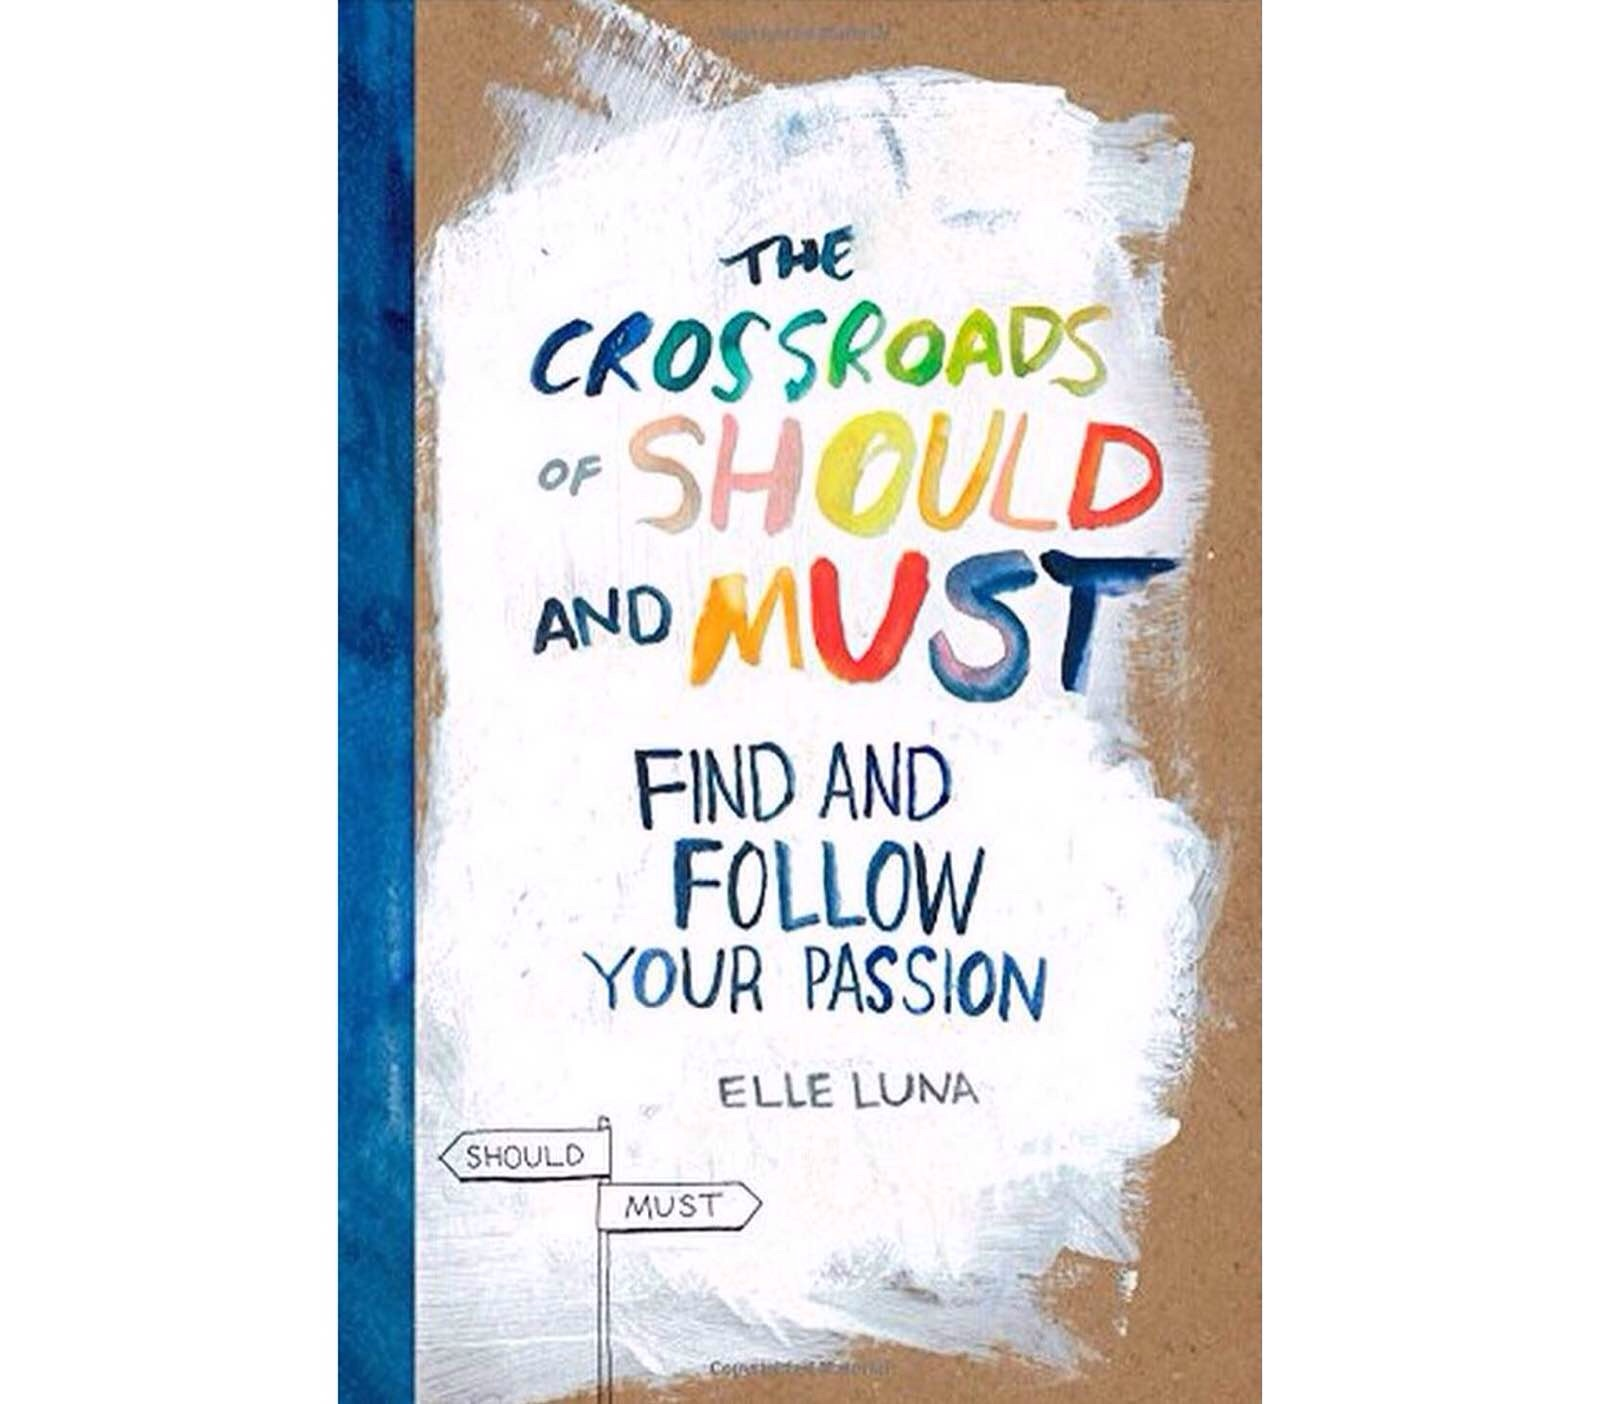 The Crossroads of Should and Must: Find and Follow Your Passion by Elle Luna. ($12)